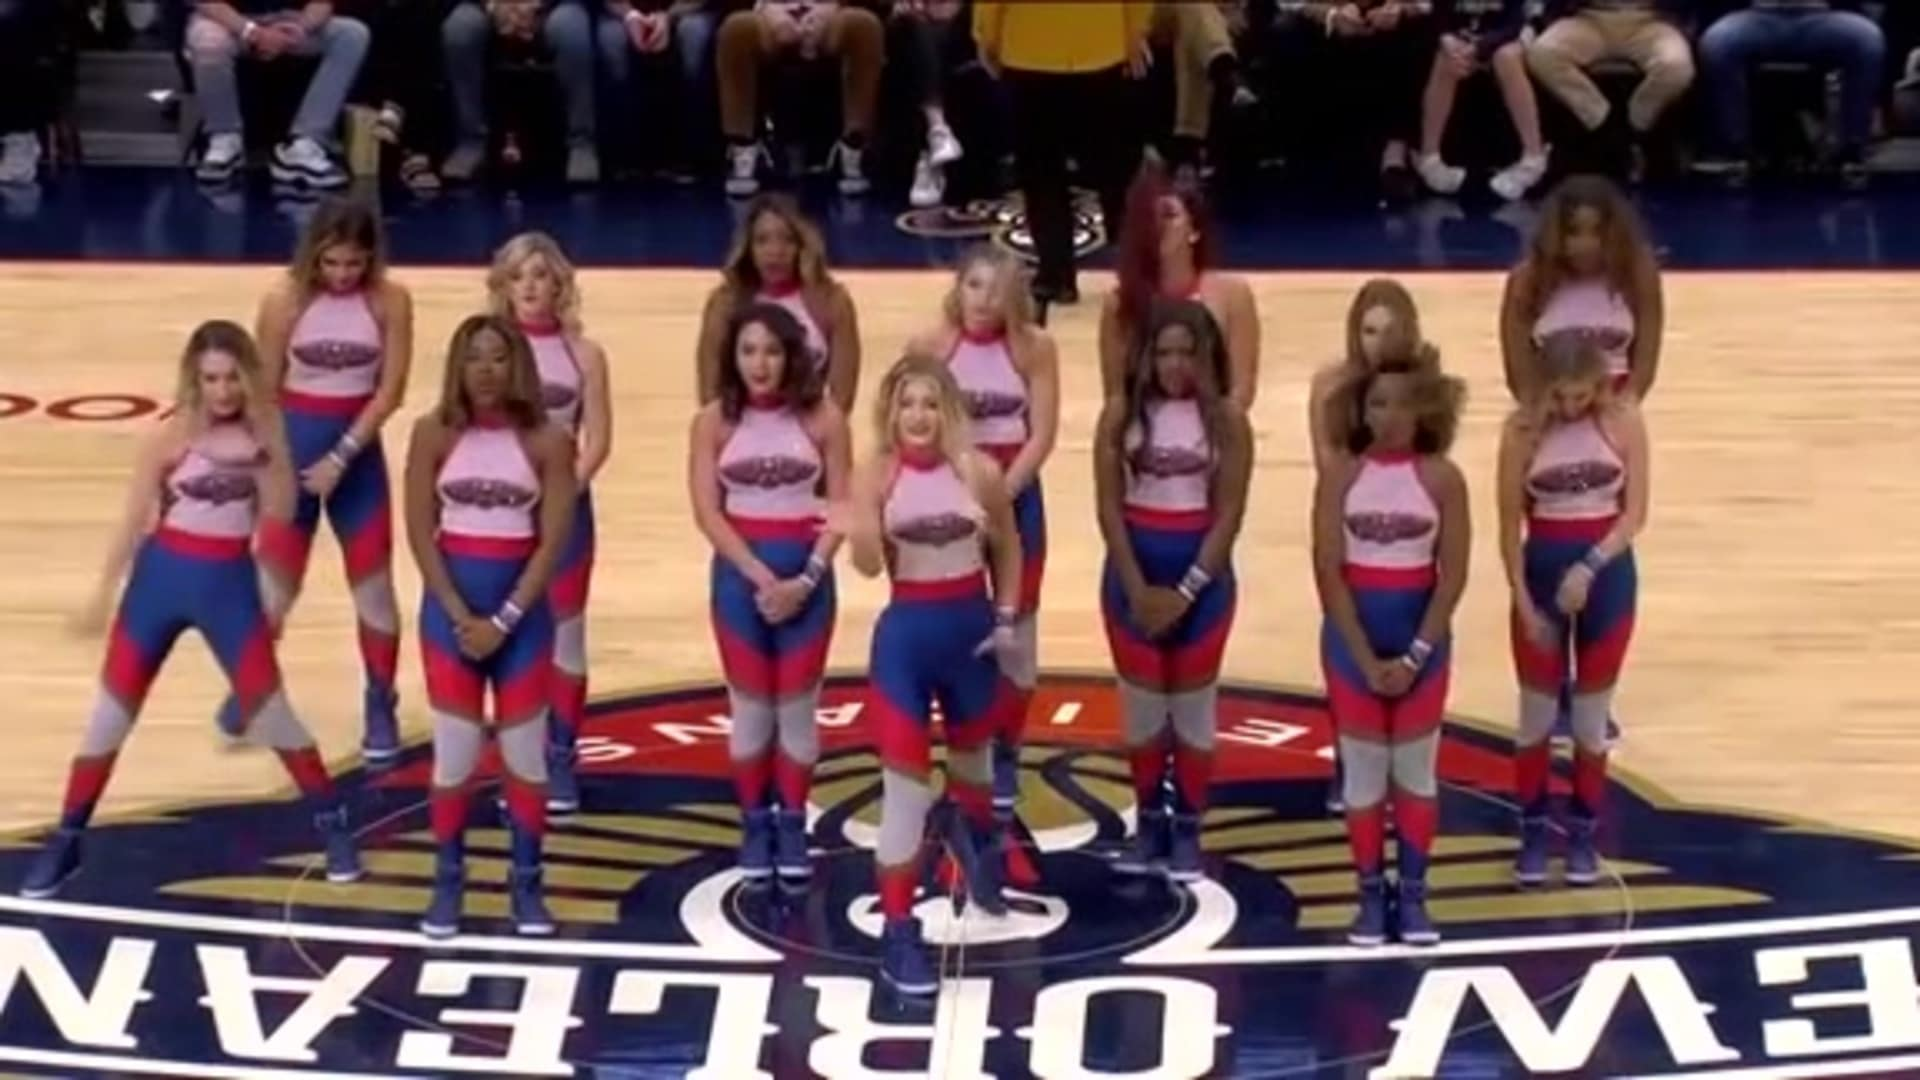 Entertainment: Pelicans Dance Team 4th quarter performance - October 28 vs. Golden State Warriors